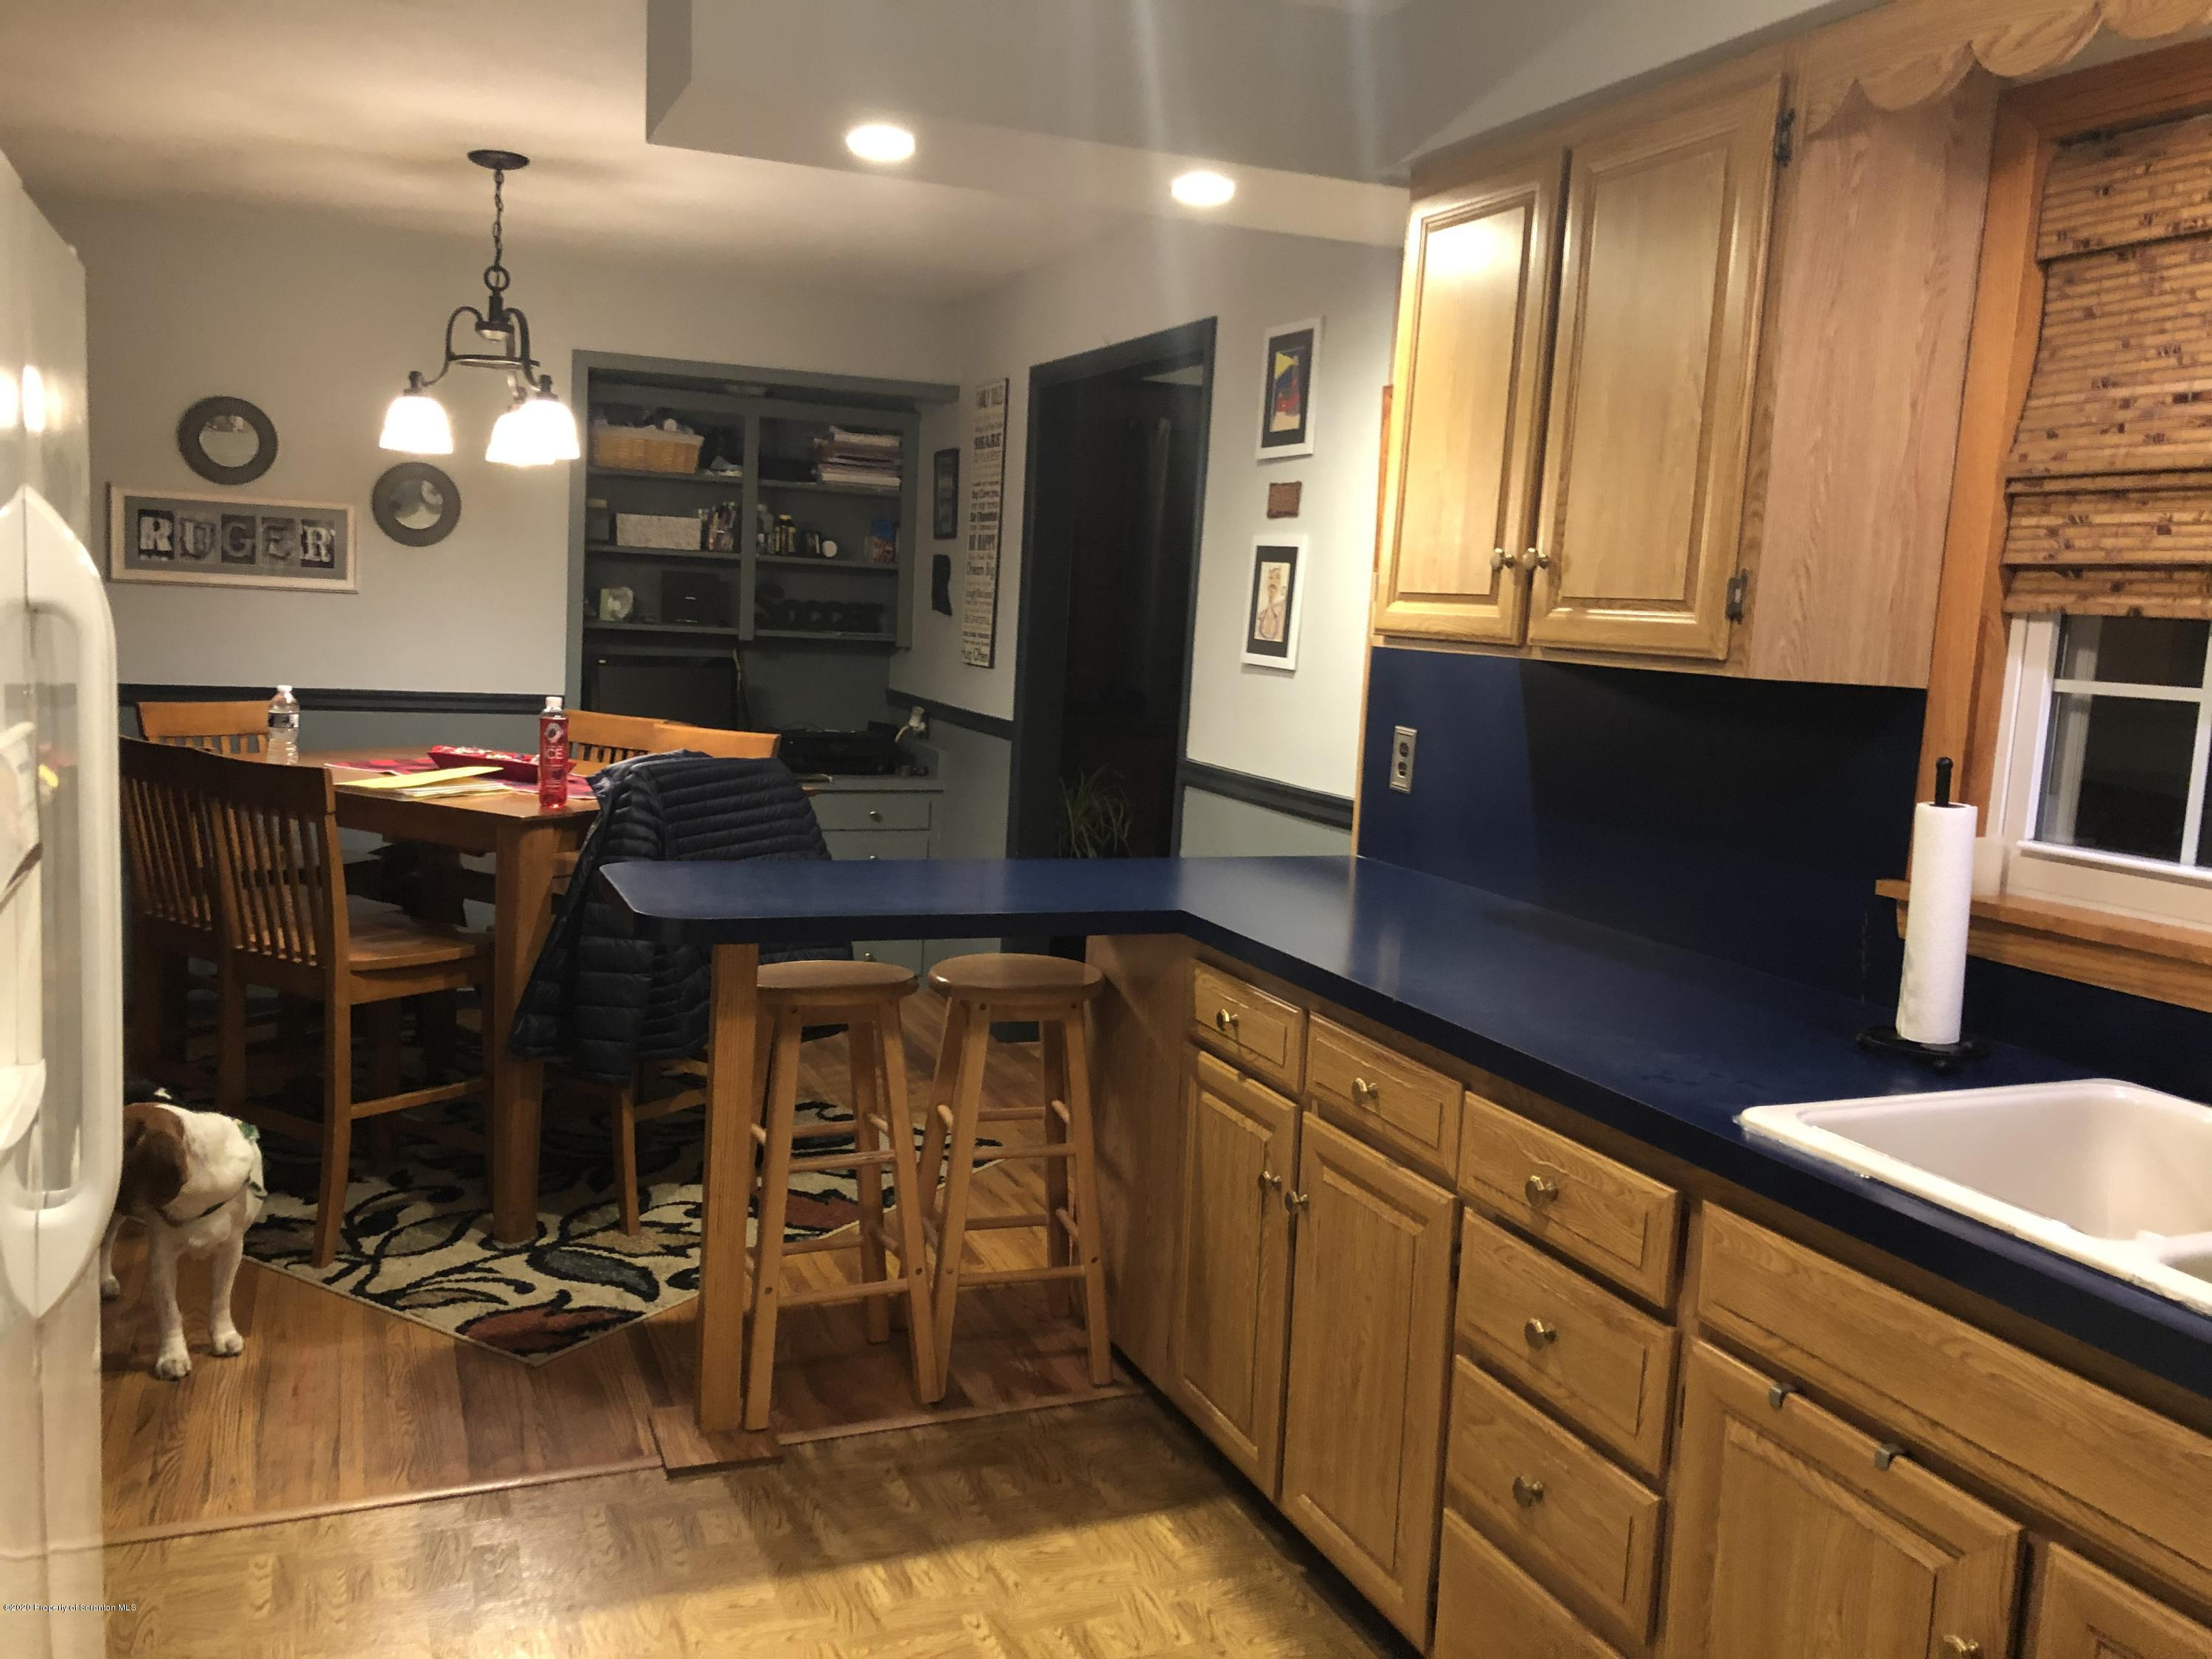 210 Bissell St, Clarks Summit, Pennsylvania 18411, 3 Bedrooms Bedrooms, 7 Rooms Rooms,2 BathroomsBathrooms,Single Family,For Sale,Bissell,20-160